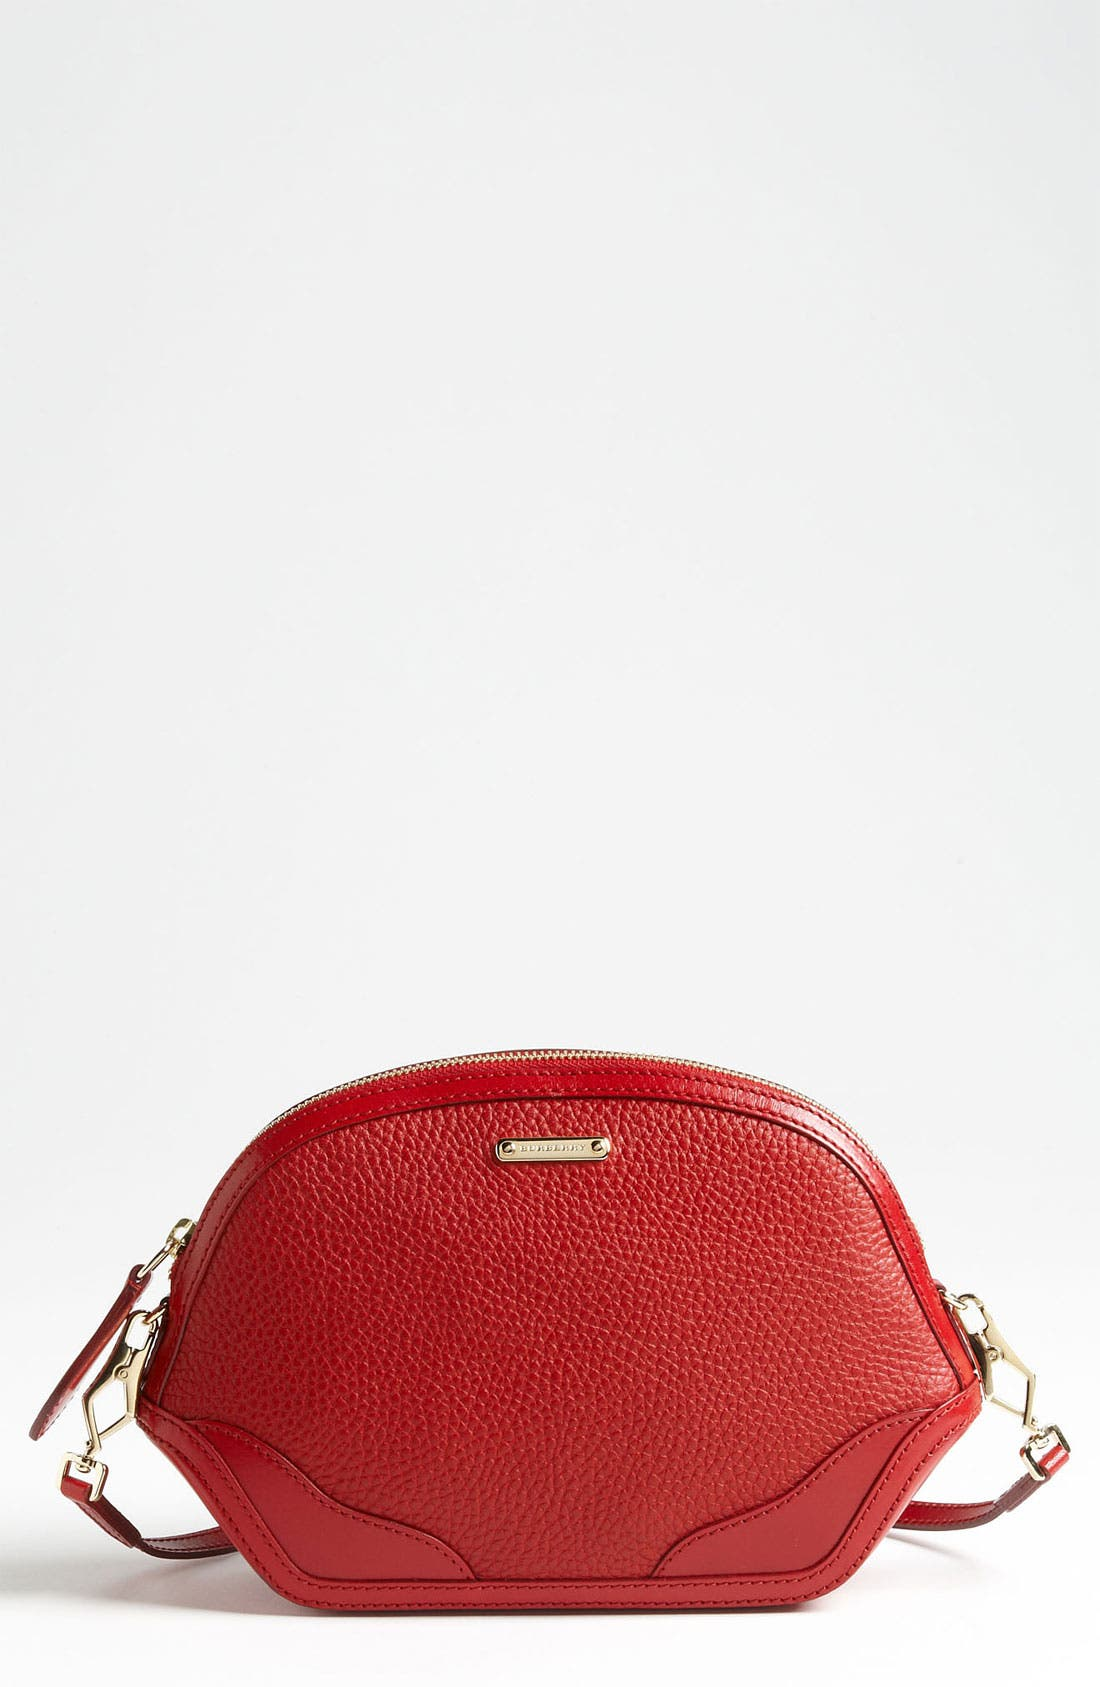 Main Image - Burberry 'London Grainy' Leather Crossbody Bag